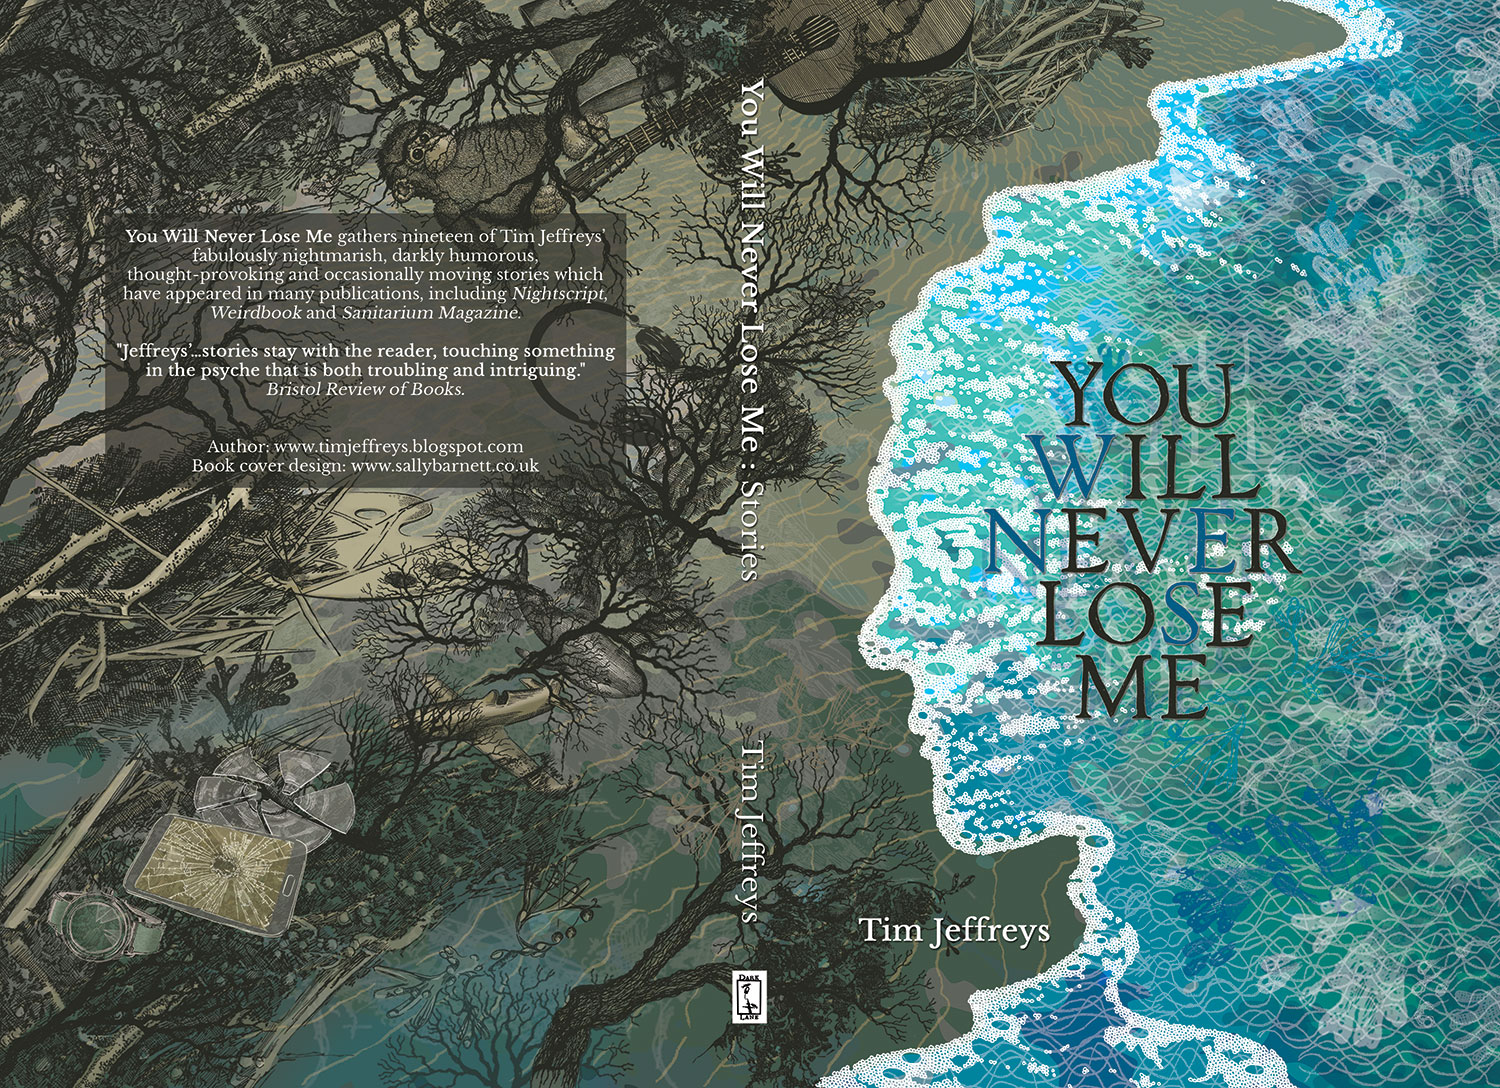 You Will Never Lose Me by Tim Jeffreys, illustration and book cover design layout by Sally Barnett illustrator frome bath bristol - face in the seashore with creatures in it and debris (watch, phone, cd, plane, shark, headphones, palette, monkey, handbag, guitar on the beach